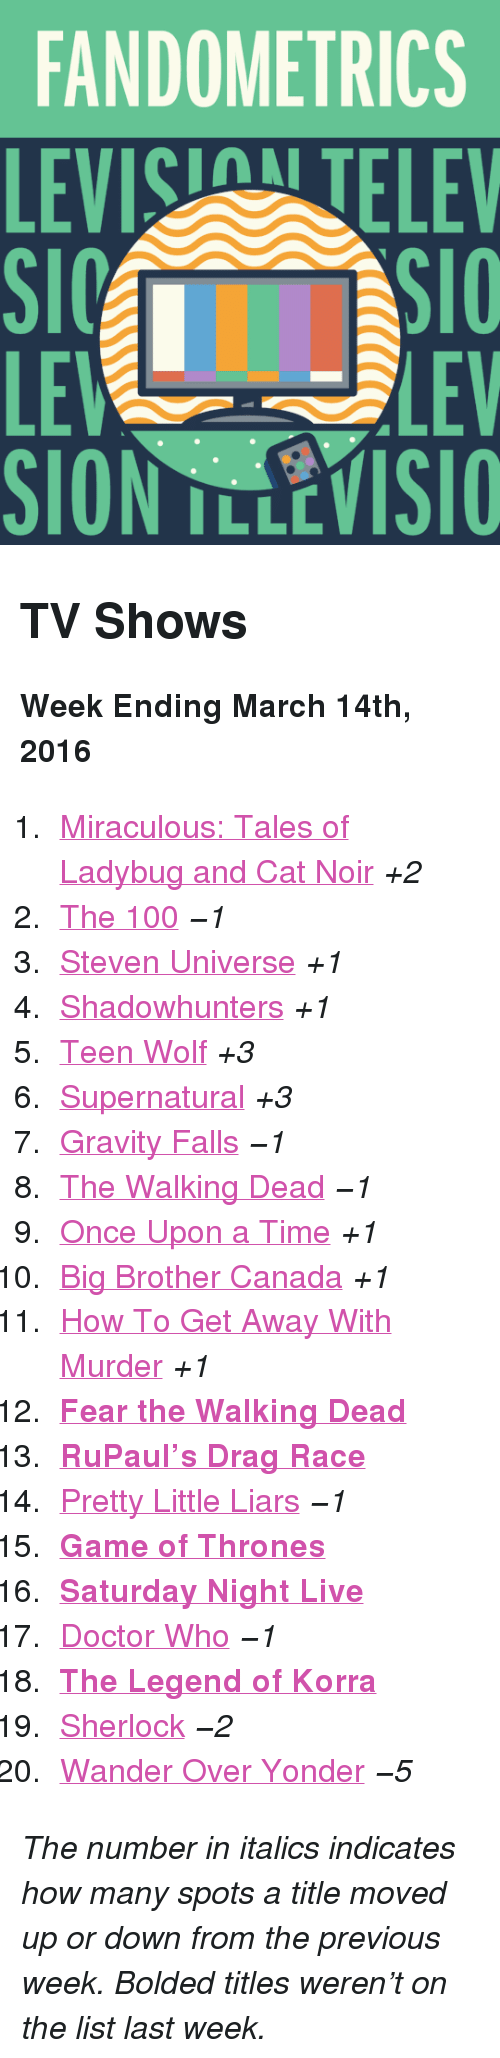 """Fear The Walking Dead: FANDOMETRICS  LEVIS TELEV  LE  SION TLLEVISIO  LEV <h2>TV Shows</h2><p><b>Week Ending March 14th, 2016</b></p><ol><li><a href=""""http://www.tumblr.com/search/miraculous%20ladybug"""">Miraculous: Tales of Ladybug and Cat Noir</a><i>+2</i></li>  <li><a href=""""http://www.tumblr.com/search/the%20100"""">The 100</a><i>−1</i></li>  <li><a href=""""http://www.tumblr.com/search/steven%20universe"""">Steven Universe</a><i>+1</i></li>  <li><a href=""""http://www.tumblr.com/search/shadowhunters"""">Shadowhunters</a><i>+1</i></li>  <li><a href=""""http://www.tumblr.com/search/teen%20wolf"""">Teen Wolf</a><i>+3</i></li>  <li><a href=""""http://www.tumblr.com/search/supernatural"""">Supernatural</a><i>+3</i></li>  <li><a href=""""http://www.tumblr.com/search/gravity%20falls"""">Gravity Falls</a><i>−1</i></li>  <li><a href=""""http://www.tumblr.com/search/the%20walking%20dead"""">The Walking Dead</a><i>−1</i></li>  <li><a href=""""http://www.tumblr.com/search/ouat"""">Once Upon a Time</a><i>+1</i></li>  <li><a href=""""http://www.tumblr.com/search/bbcan4"""">Big Brother Canada</a><i>+1</i></li>  <li><a href=""""http://www.tumblr.com/search/how%20to%20get%20away%20with%20murder"""">How To Get Away With Murder</a><i>+1</i></li>  <li><a href=""""http://www.tumblr.com/search/fear%20the%20walking%20dead""""><b>Fear the Walking Dead</b></a></li>  <li><a href=""""http://www.tumblr.com/search/rupaul's%20drag%20race""""><b>RuPaul&rsquo;s Drag Race</b></a></li>  <li><a href=""""http://www.tumblr.com/search/pretty%20little%20liars"""">Pretty Little Liars</a><i>−1</i></li>  <li><a href=""""http://www.tumblr.com/search/game%20of%20thrones""""><b>Game of Thrones</b></a></li>  <li><a href=""""http://www.tumblr.com/search/snl""""><b>Saturday Night Live</b></a></li>  <li><a href=""""http://www.tumblr.com/search/doctor%20who"""">Doctor Who</a><i>−1</i></li>  <li><a href=""""http://www.tumblr.com/search/legend%20of%20korra""""><b>The Legend of Korra</b></a></li>  <li><a href=""""http://www.tumblr.com/search/sherlock"""">Sherlock</a><i>−2</i></li>  <li><a href=""""http://www.tumblr.com/sea"""